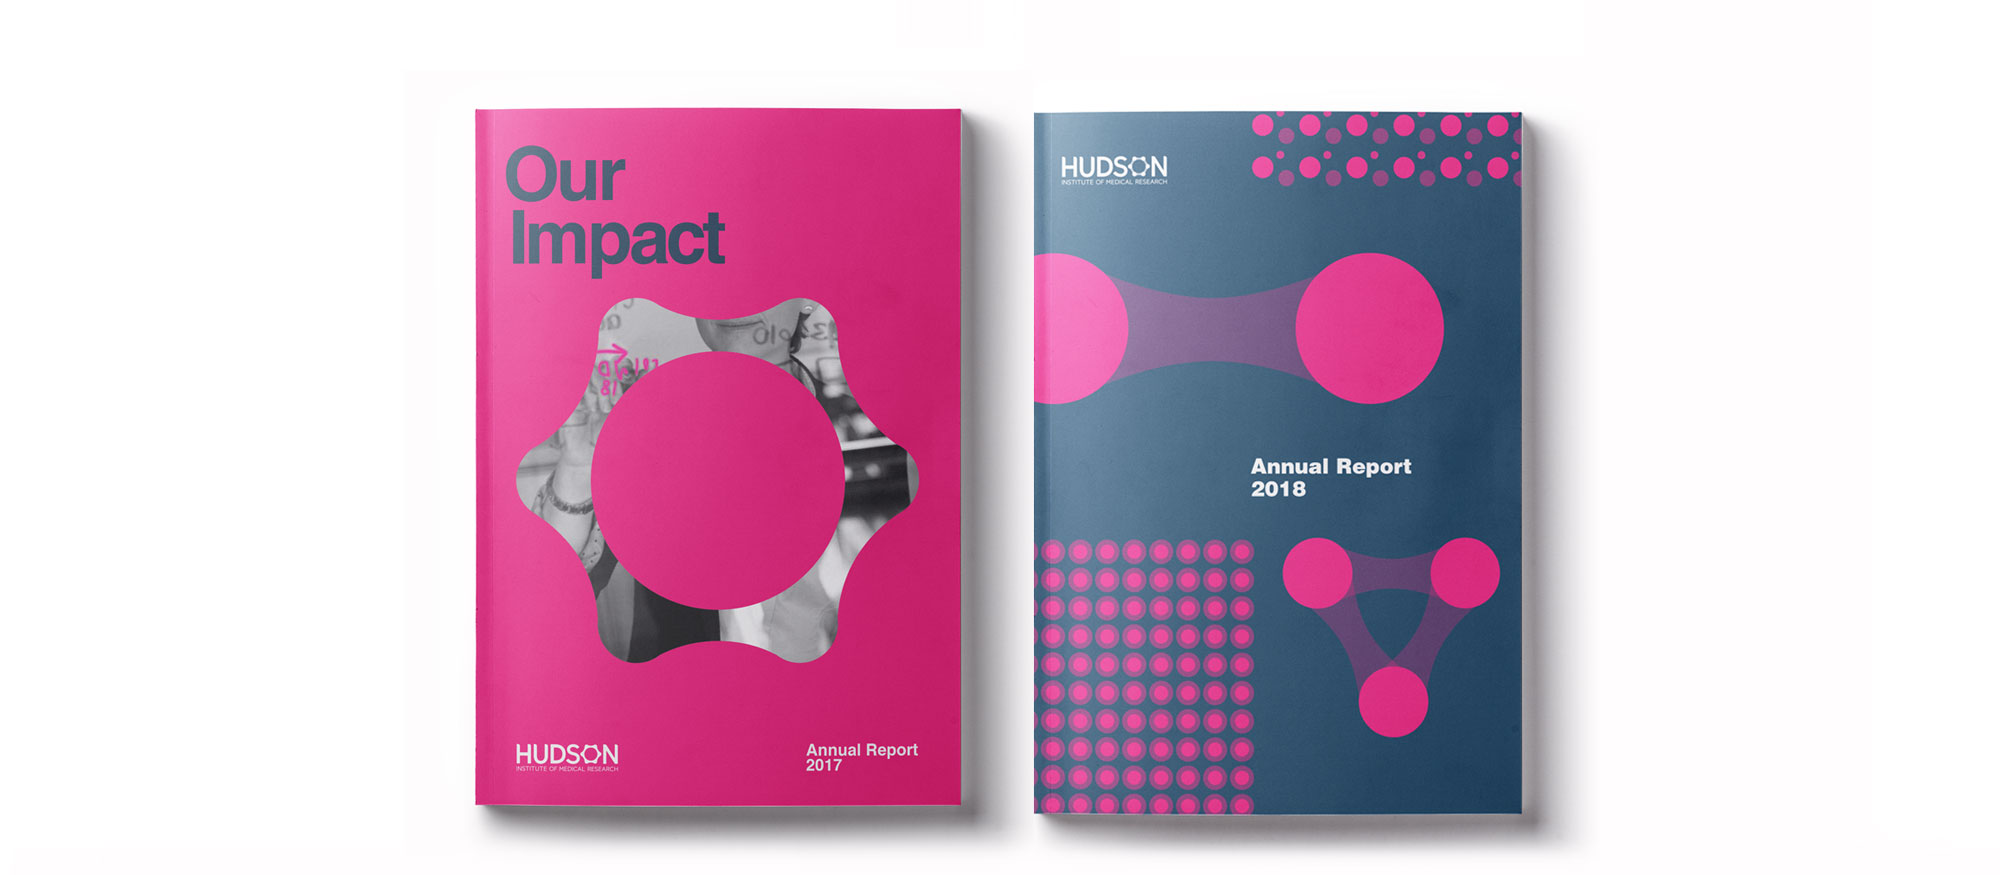 Hudson's 2017 and 2018 annual reports